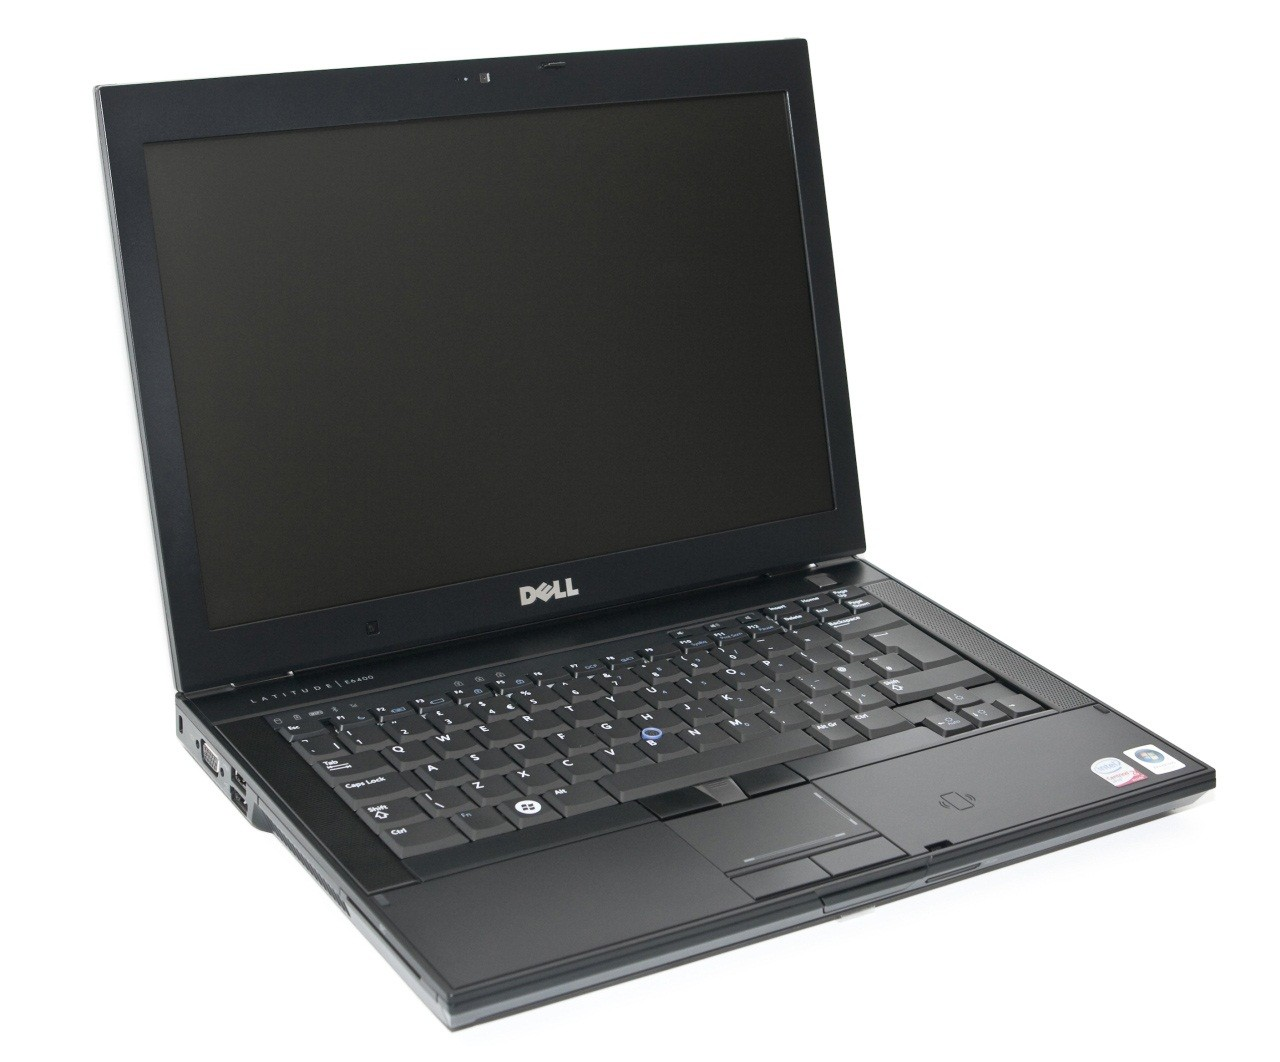 DELL LATITUDE E6500 CONTACTED SMARTCARD DRIVERS FOR PC